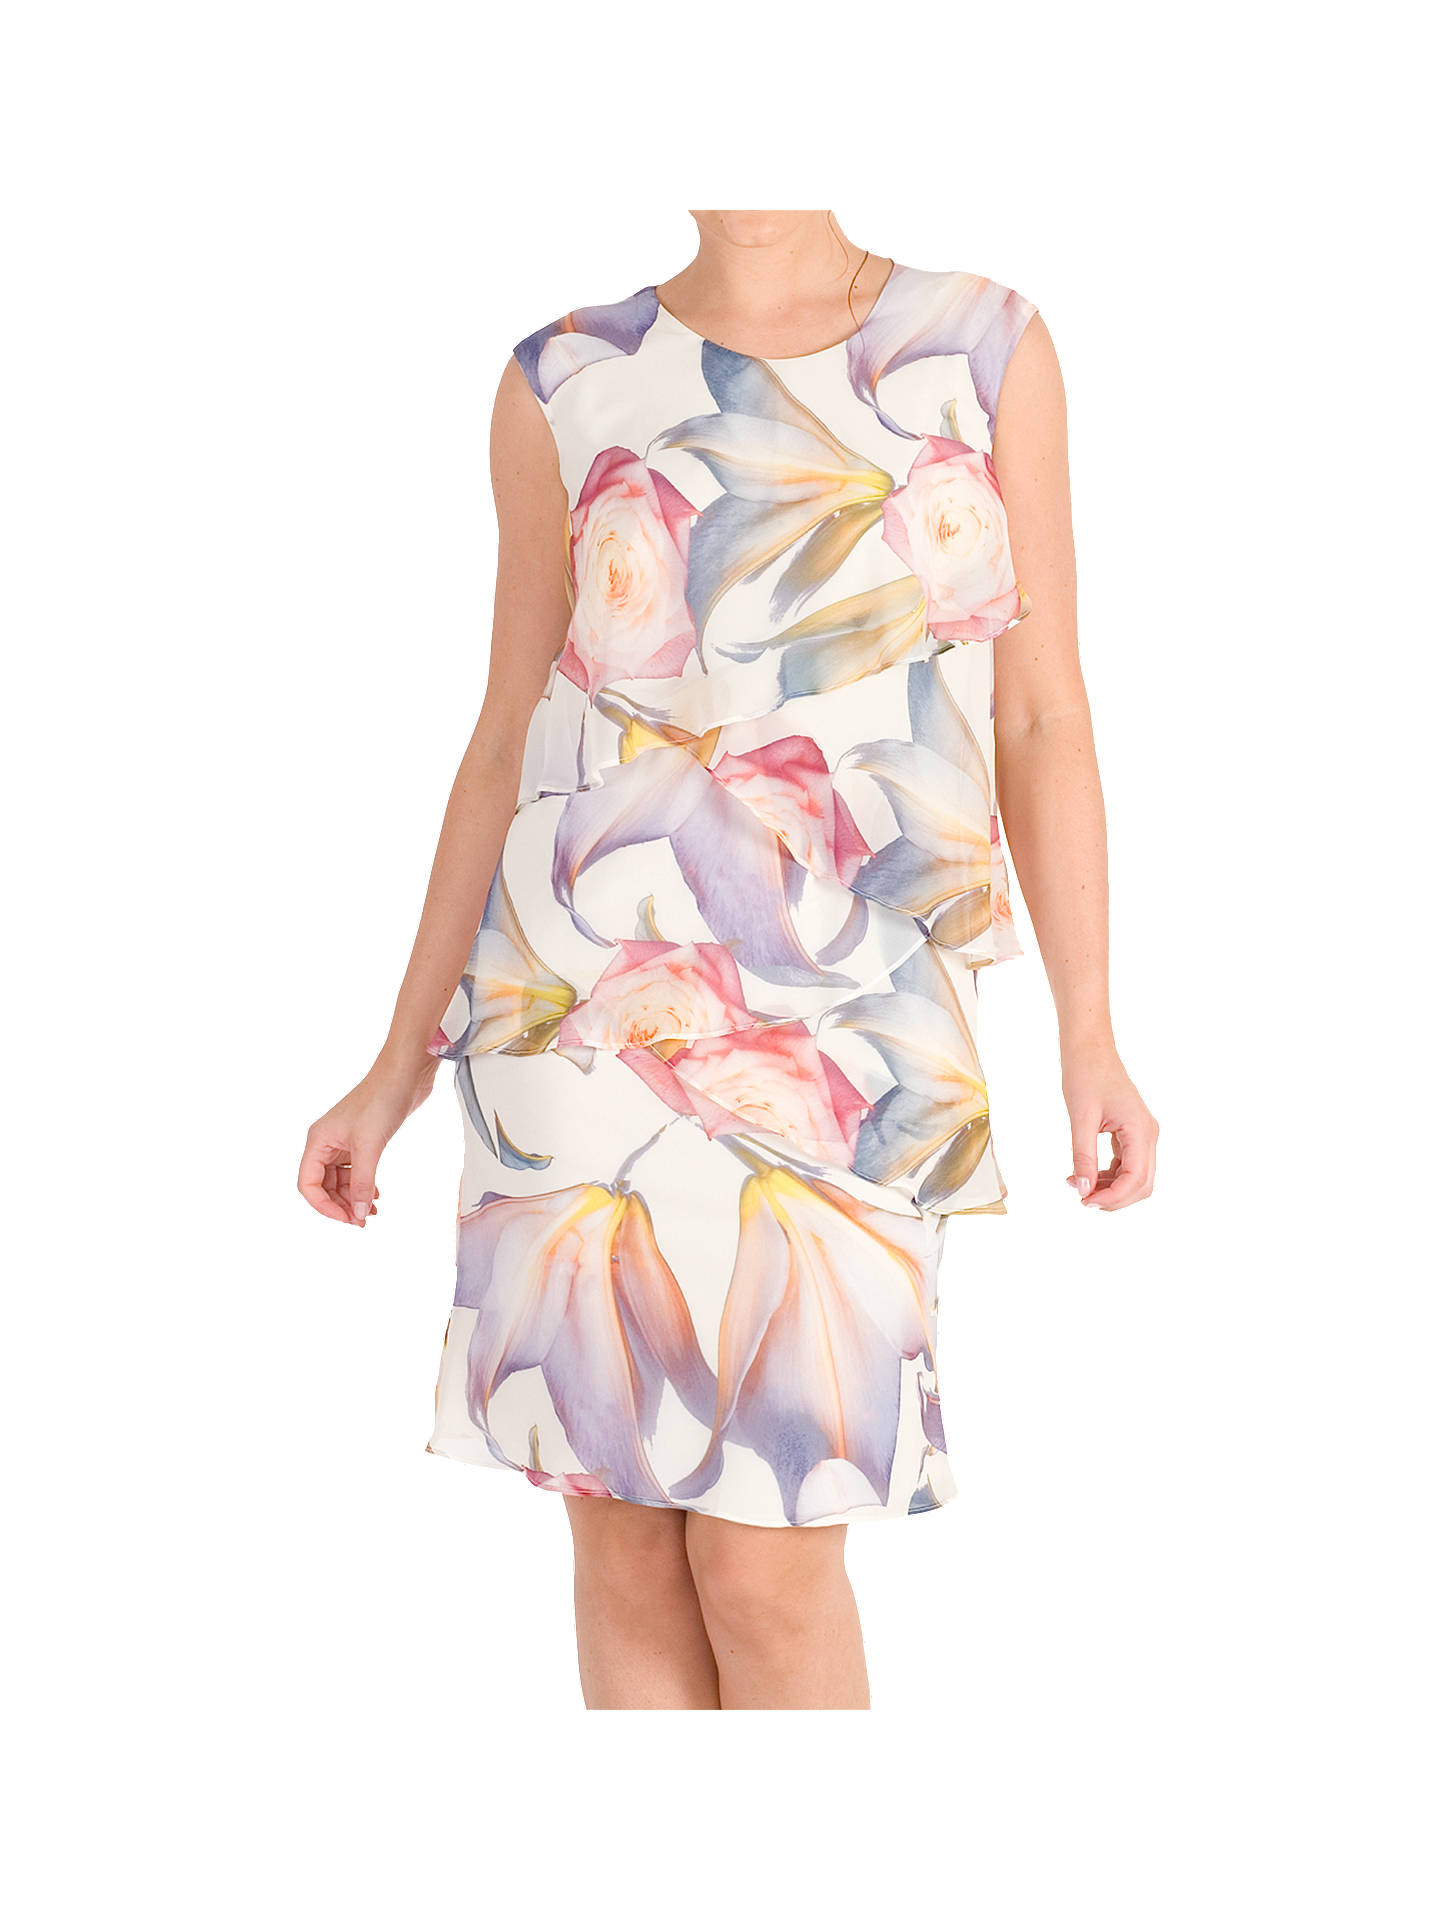 c86d8d988c1f Buy Chesca Print Layered Chiffon Dress, Multi, 12 Online at johnlewis.com  ...